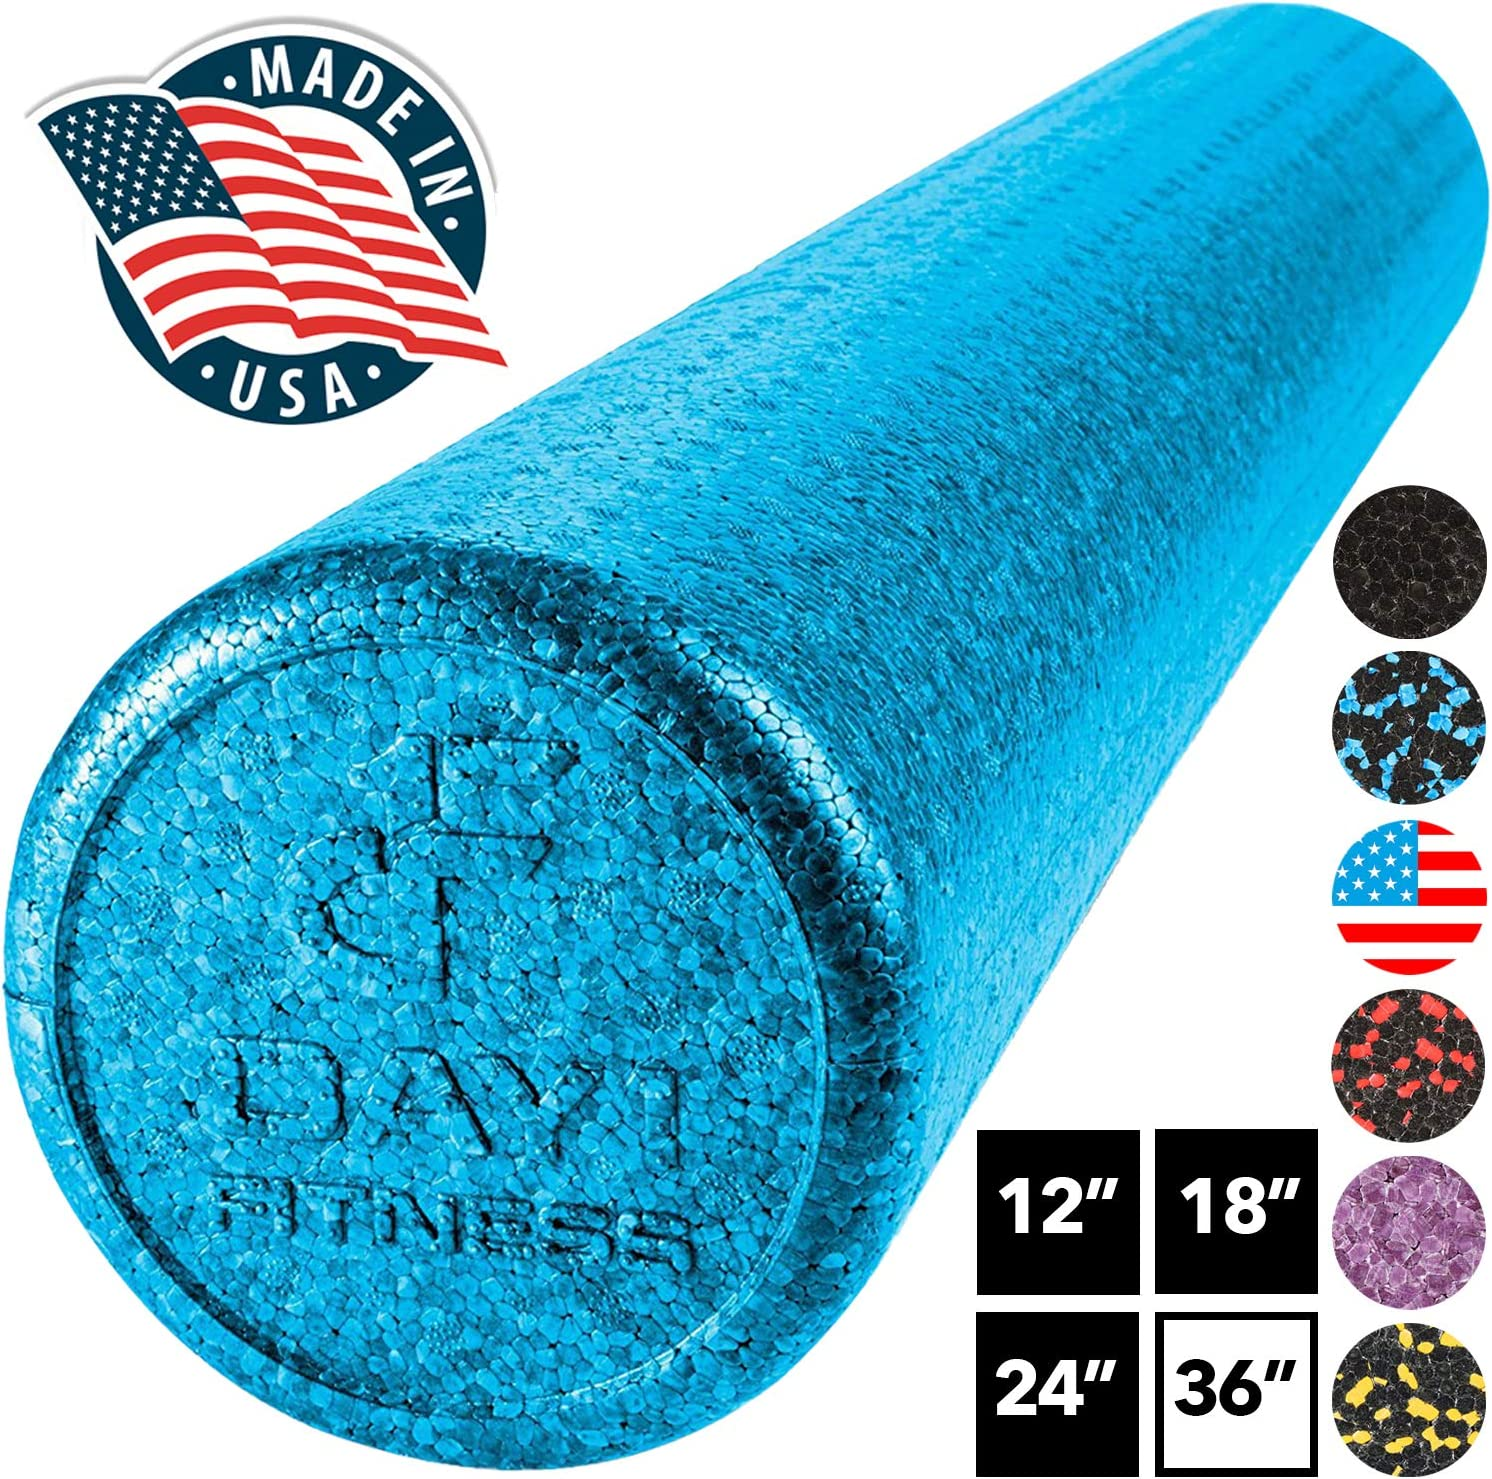 12,18,24,36 Renewed Ideal for Exercise and Pain Relief High Density Muscle Foam Rollers by Day 1 Fitness Deep Tissue and Myofascial Release Sports Massage Rollers for Stretching /& 7 Colors 4 Sizes Physical Therapy